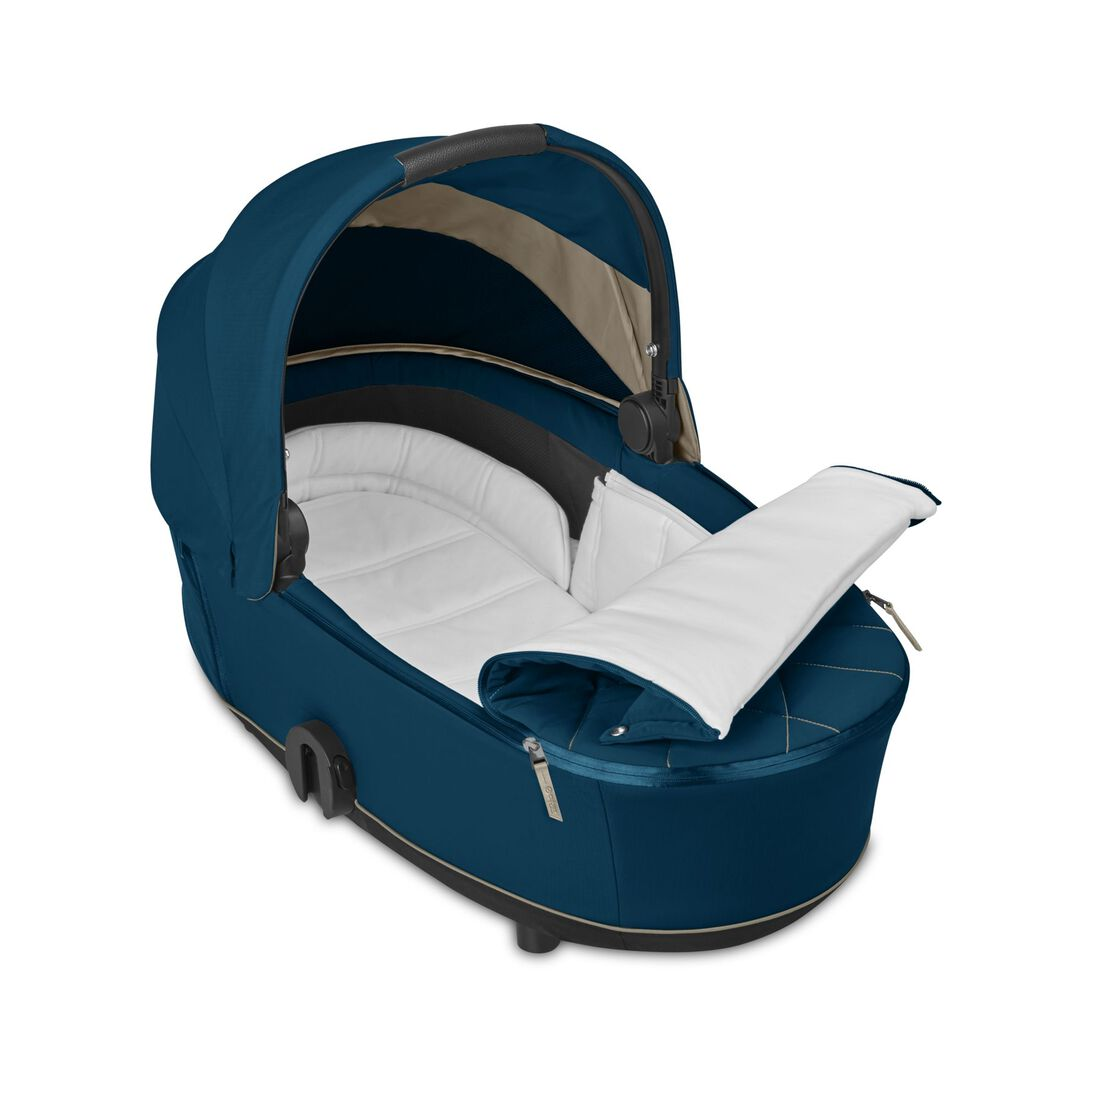 CYBEX Mios Lux Carry Cot - Mountain Blue in Mountain Blue large Bild 2